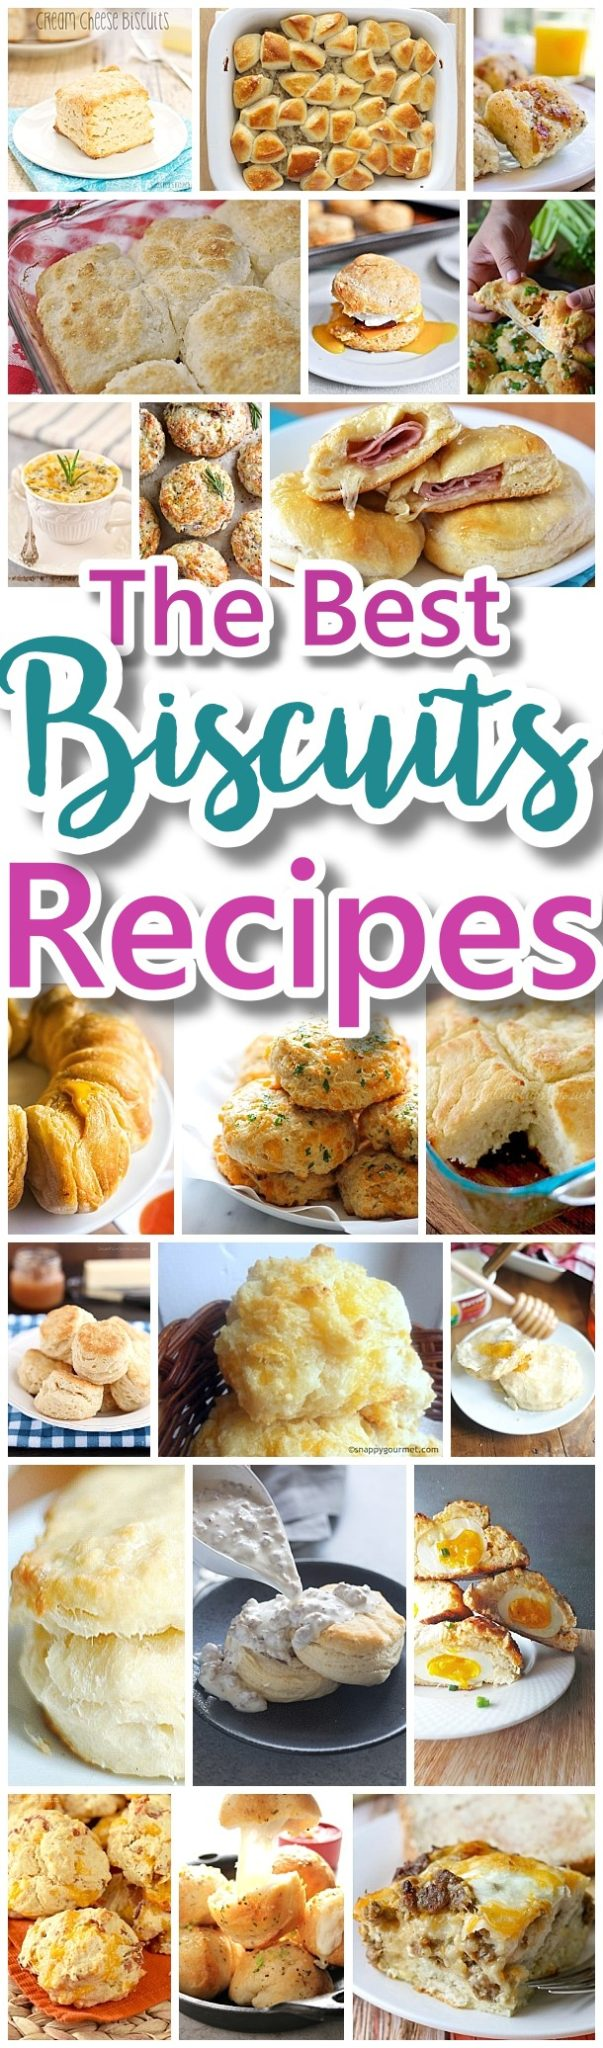 The Best Biscuits Recipes - Quick, Easy and Delicious Bread Sides and Main Dish Ideas for Breakfast, Brunch, Lunch and Family Dinners - Dreaming in DIY